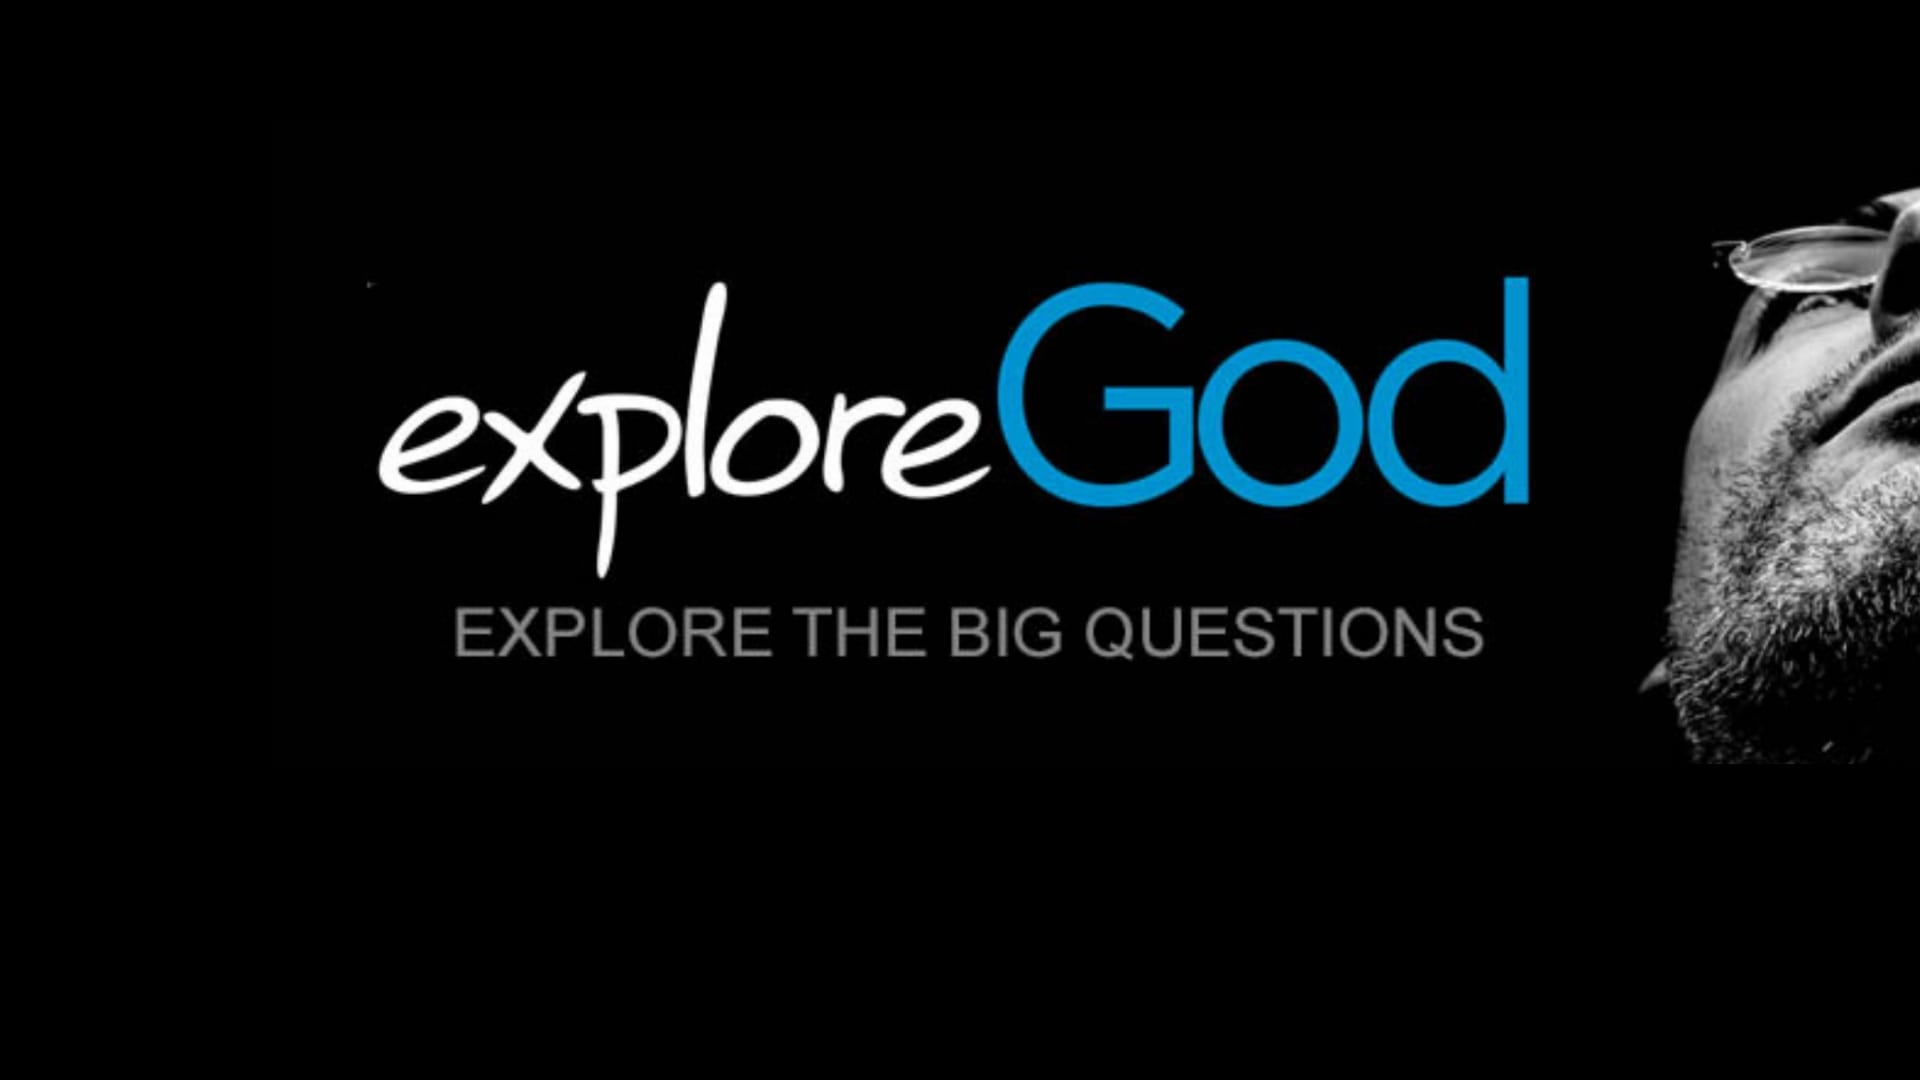 ExploreGod at The Village Christian Church in MInooka, IL as the big questions aboutGod, the Bible and life are explored.